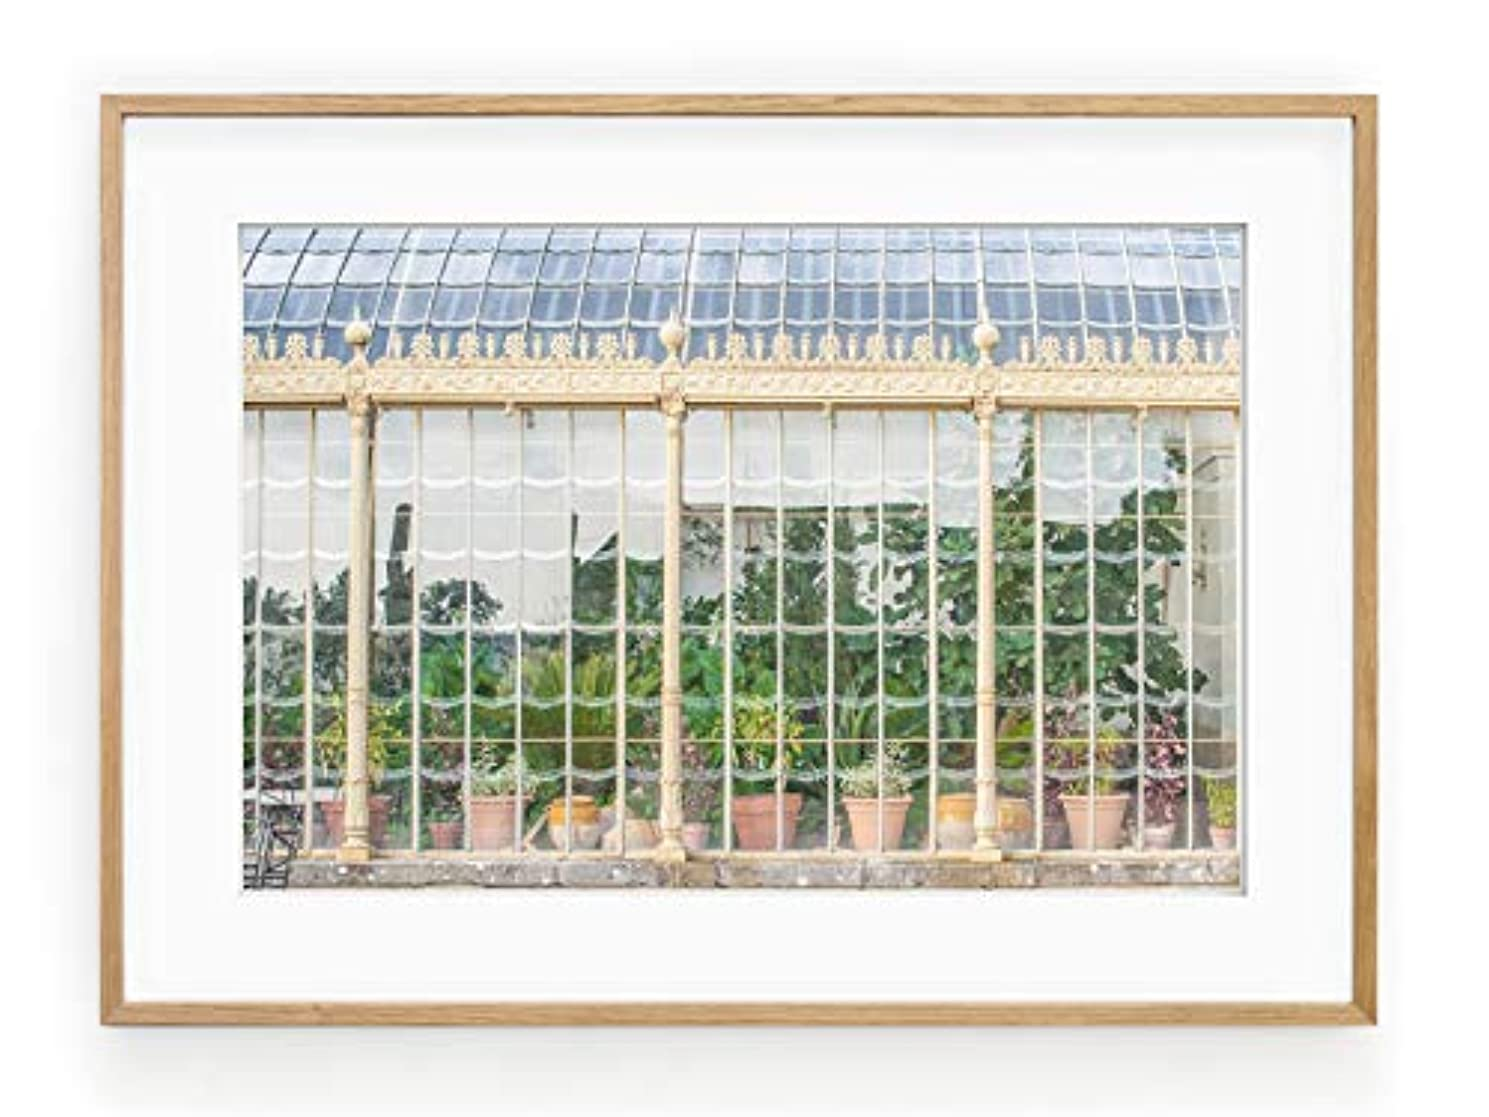 Green House Black Satin Aluminium Frame with Mount, Multicolored, 50x70